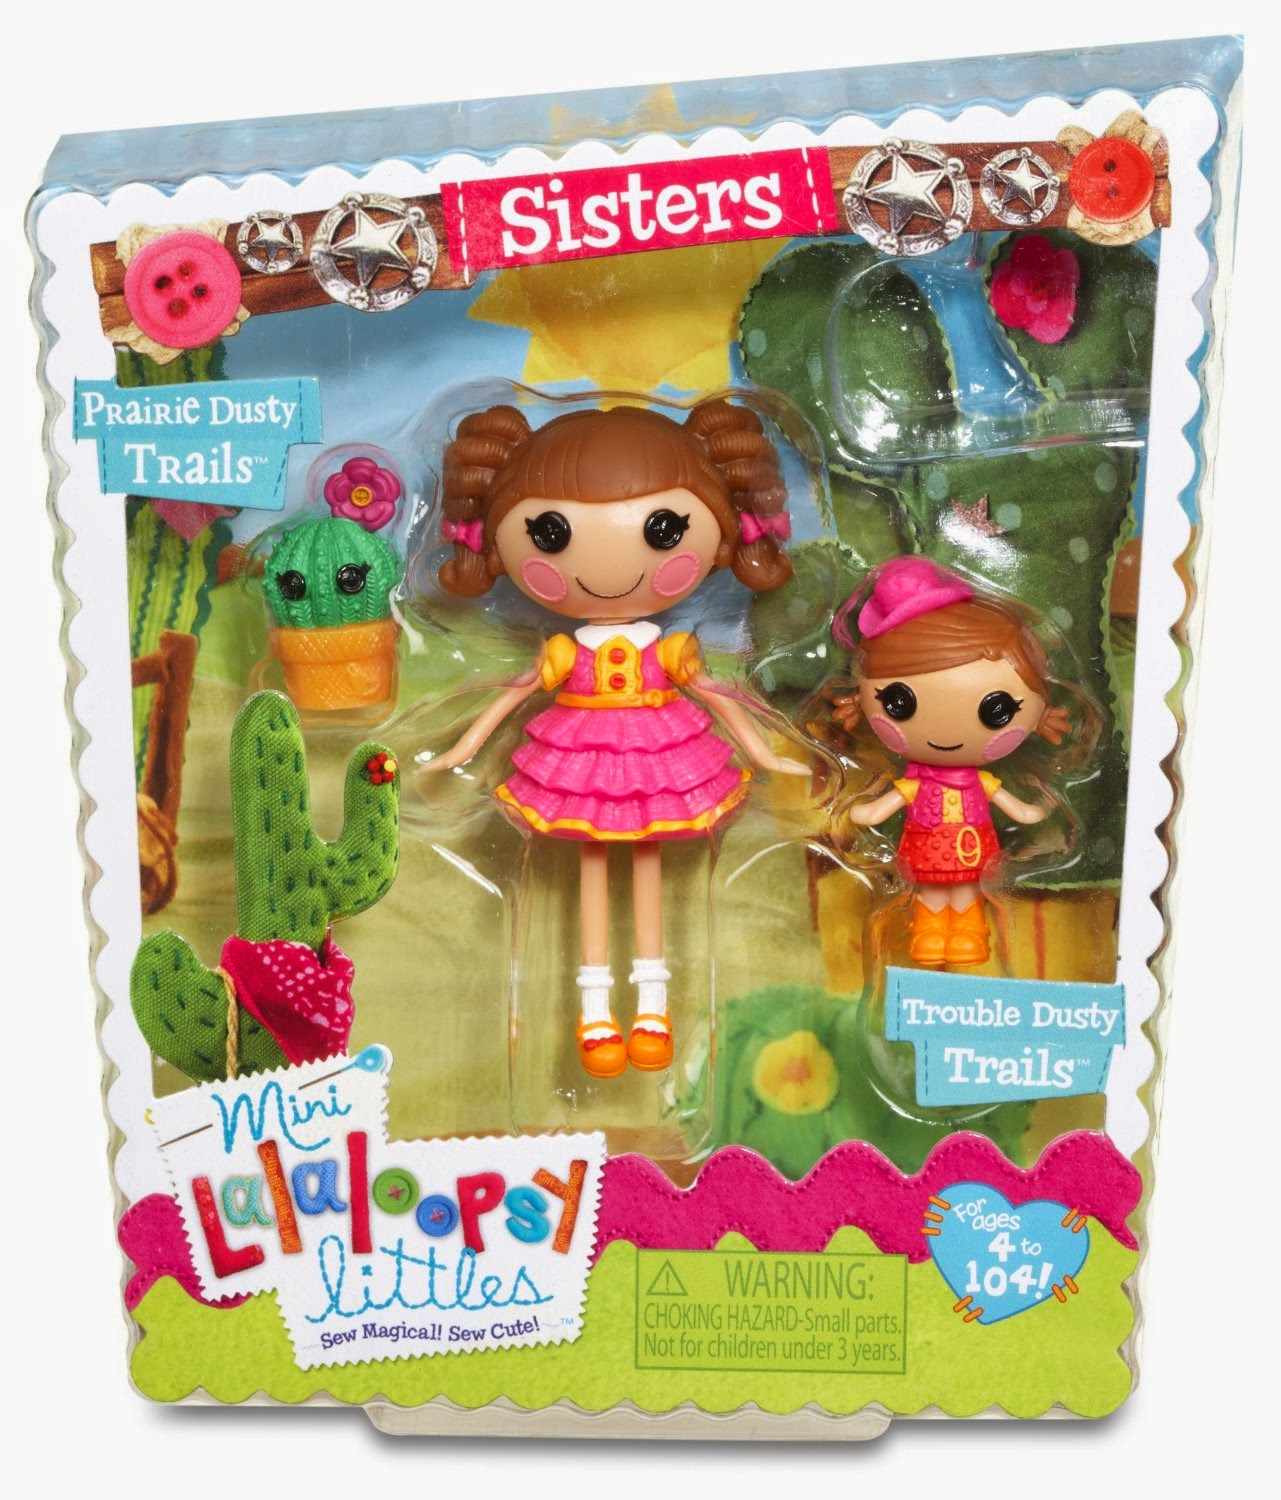 http://www.amazon.com/Lalaloopsy-Littles-Trouble-Trails-Prairie/dp/B00EZIL0QQ/ref=sr_1_3?ie=UTF8&qid=1404284773&sr=8-3&keywords=lalaloopsy+mini